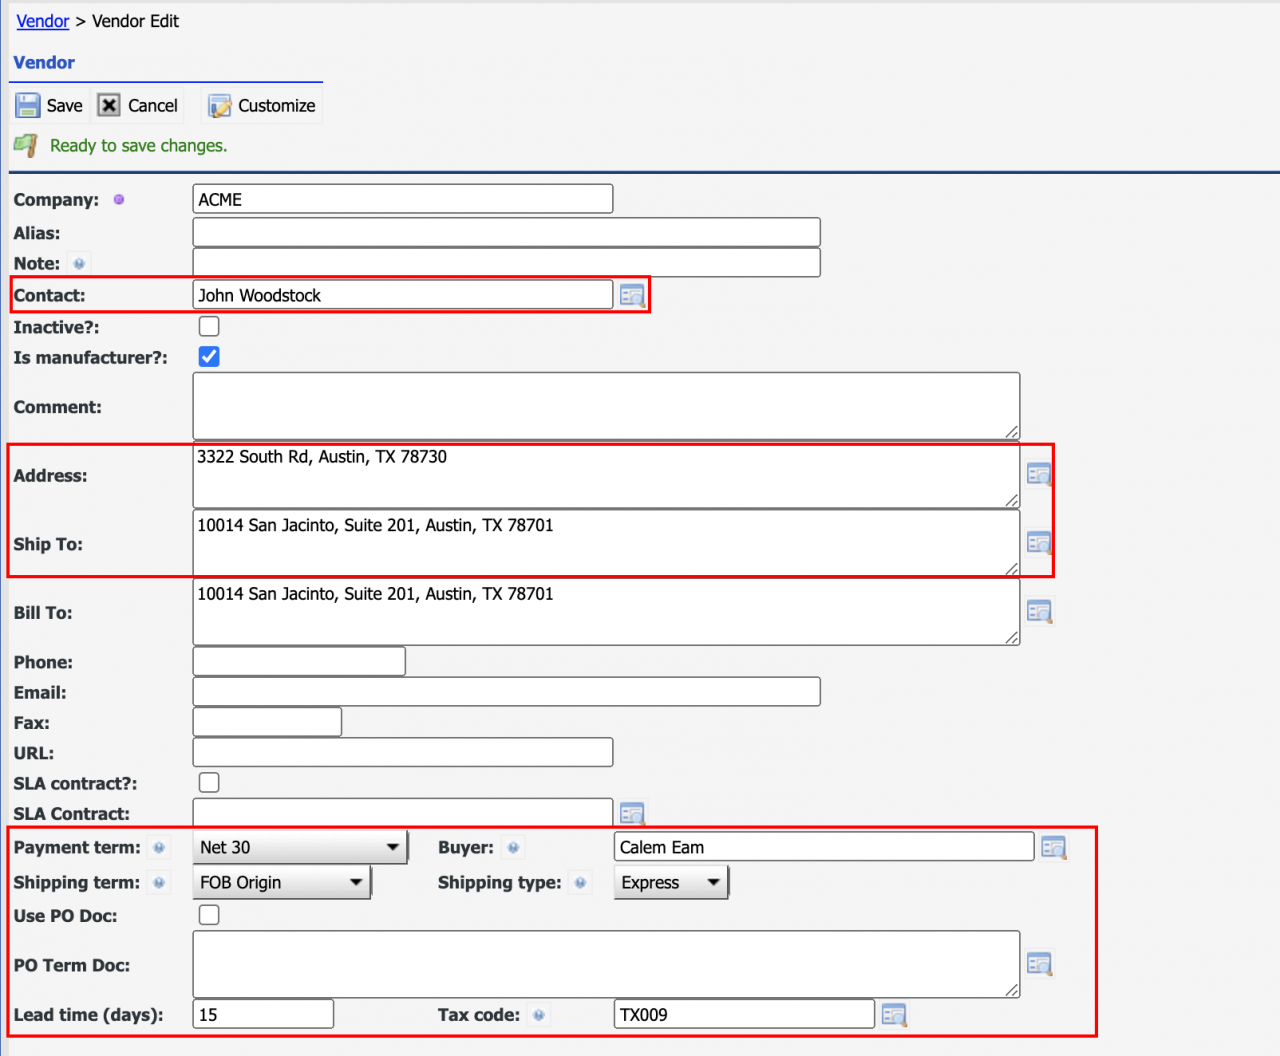 How to Set up Vendor Defaults for Purchase Orders (POs)